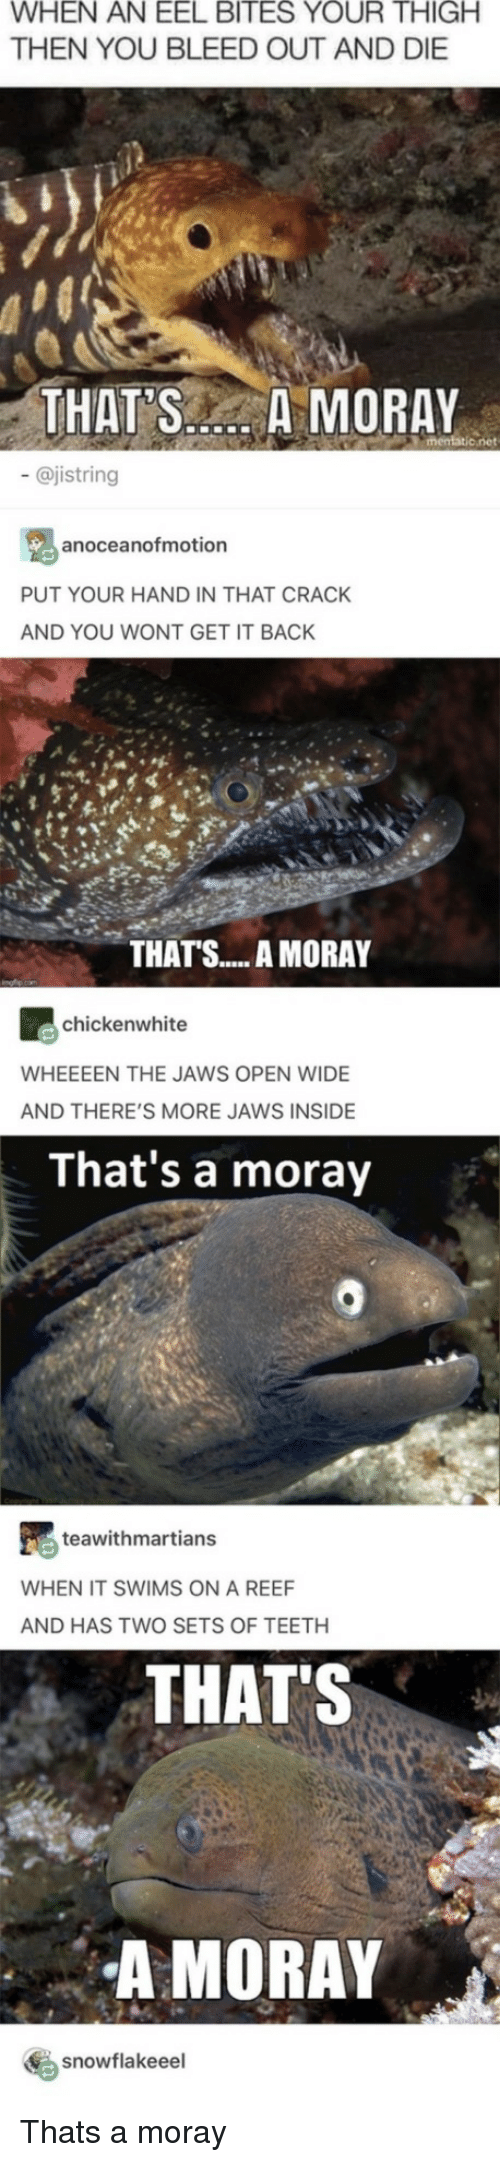 Back, Jaws, and Teeth: WHEN AN EEL BITES YOUR THIGH  THEN YOU BLEED OUT AND DIE  THAT'S AMORAY  - @jistring  anoceanofmotion  PUT YOUR HAND IN THAT CRACK  AND YOU WONT GET IT BACK  THATS... A MORAY  chickenwhite  WHEEEEN THE JAWS OPEN WIDE  AND THERE'S MORE JAWS INSIDE  That's a moray  teawithmartians  WHEN IT SWIMS ON A REEF  AND HAS TWO SETS OF TEETH  THATS  A MORAY  snowfla keee! Thats a moray